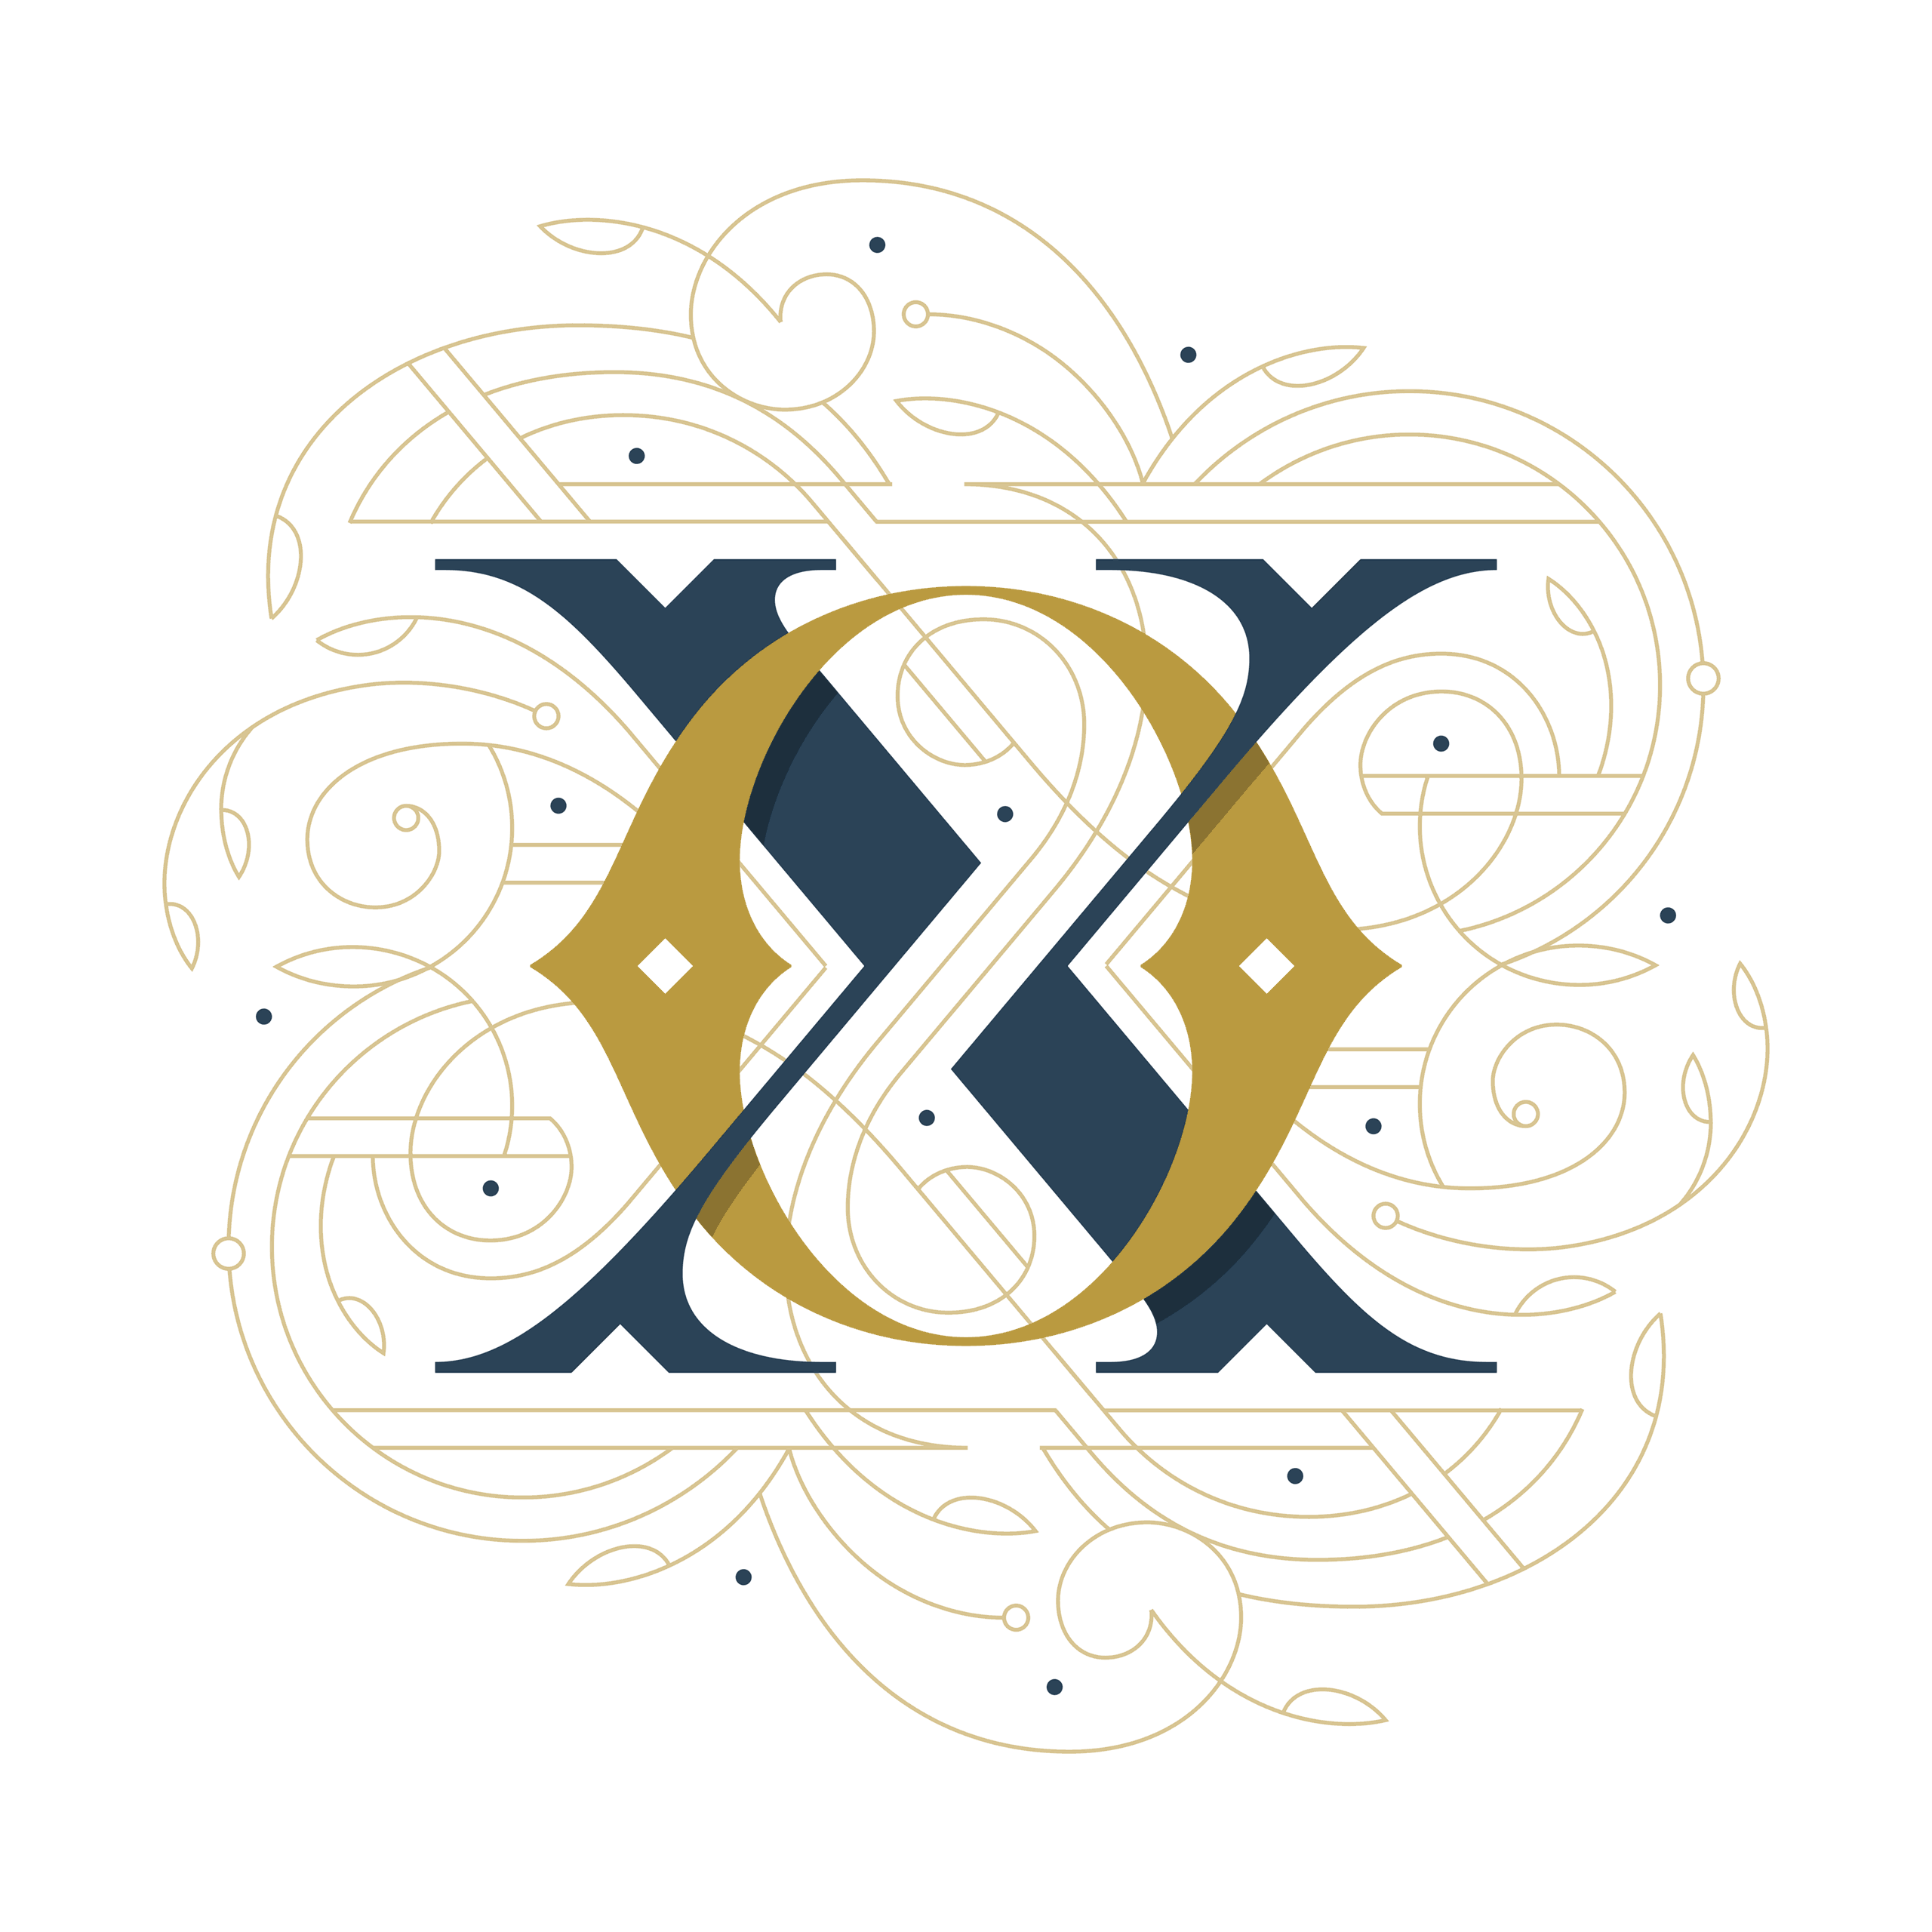 Oxford Print Fair Monogram Designed by Dan Forster